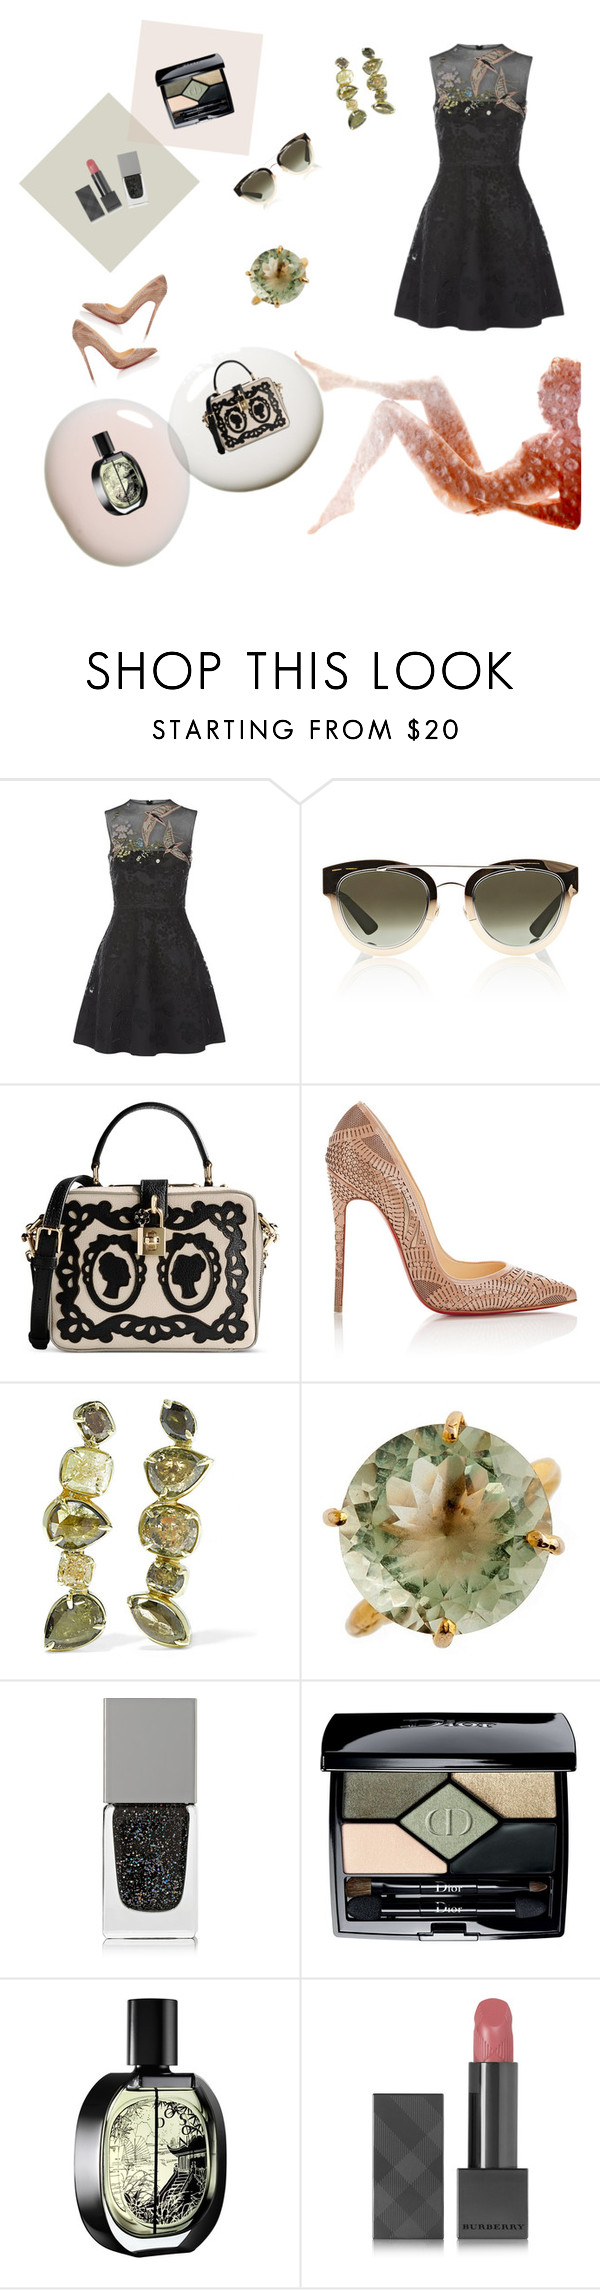 """Untitled #22"" by solmazz ❤ liked on Polyvore featuring Valentino, Christian Dior, Dolce&Gabbana, Christian Louboutin, Kimberly McDonald, By Emily, Givenchy, Diptyque and Burberry"